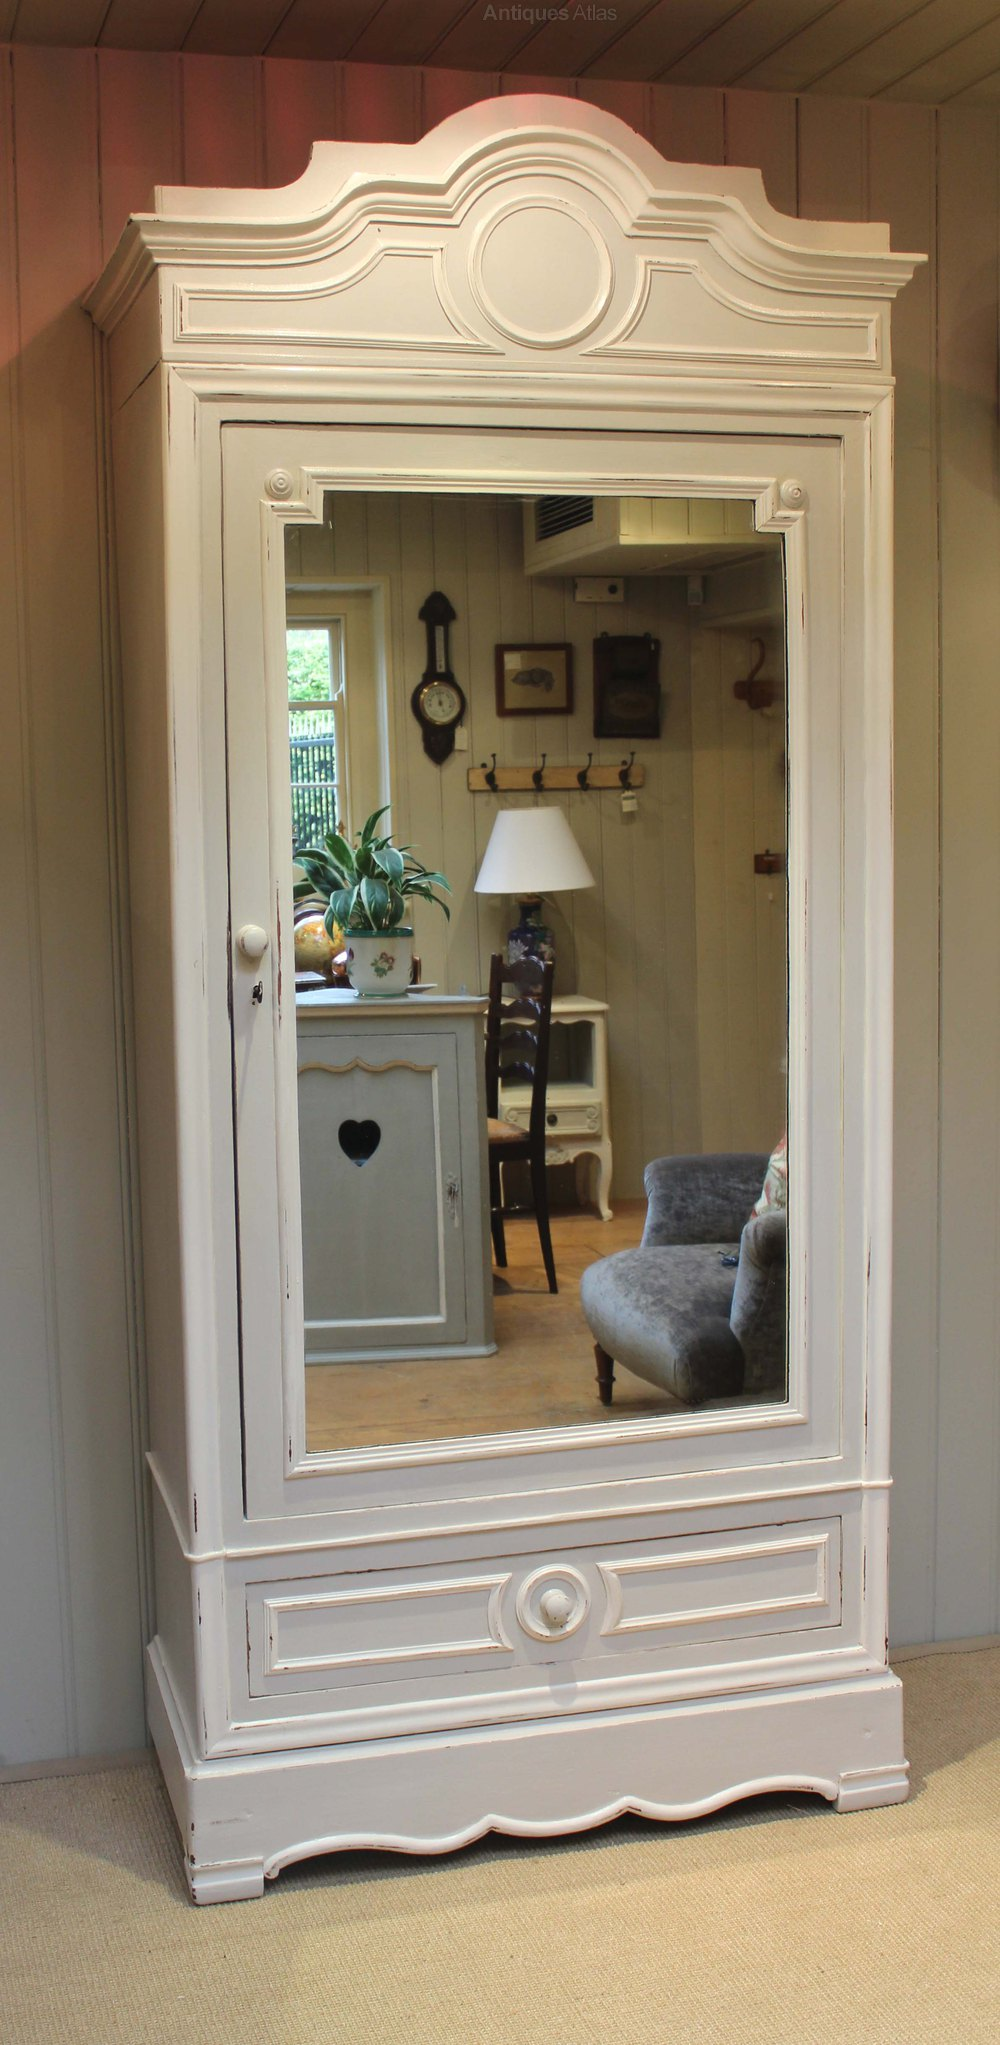 Painted Single Mirrored Door Armoire - Antiques Atlas